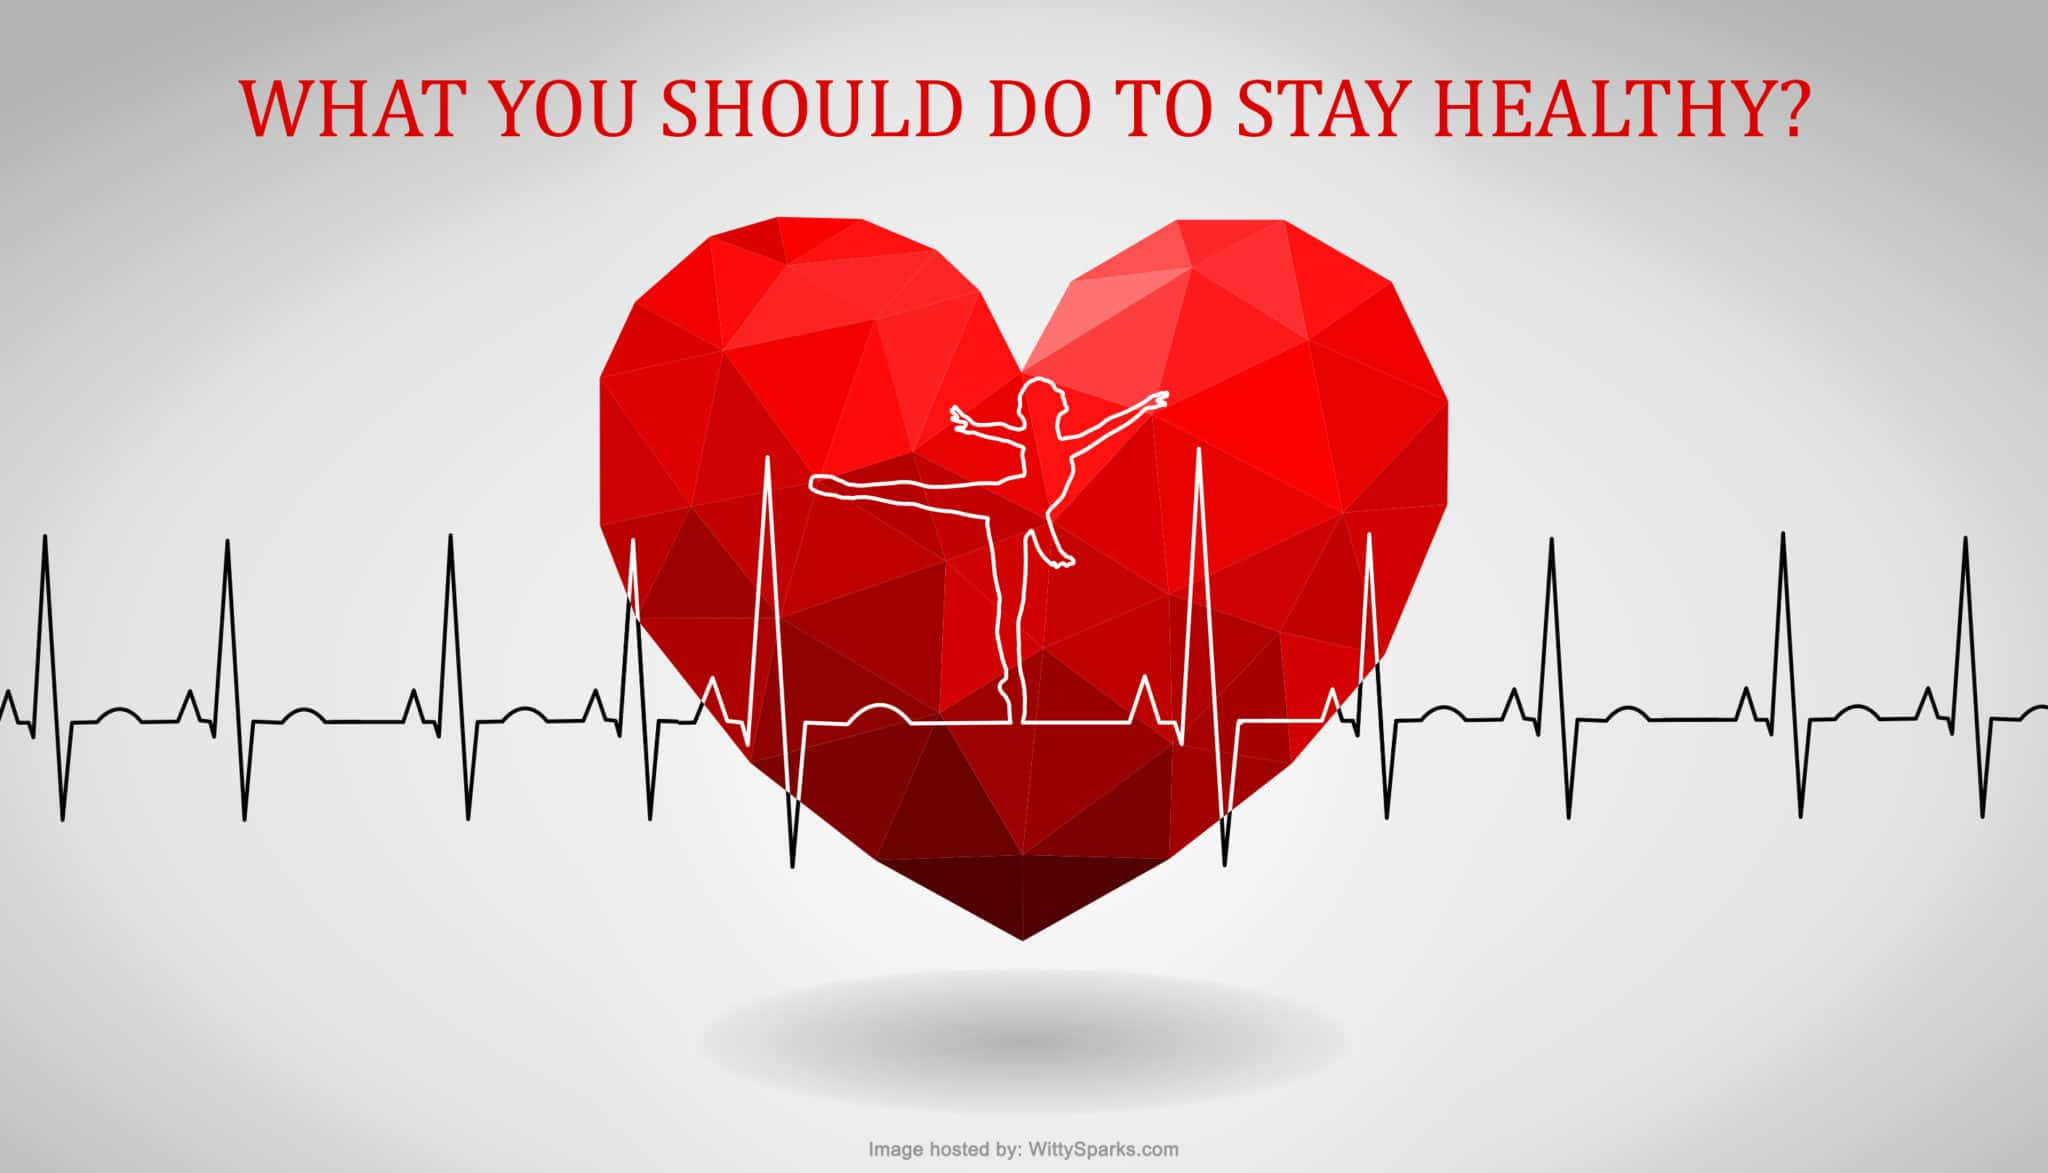 Things to do to stay healthy